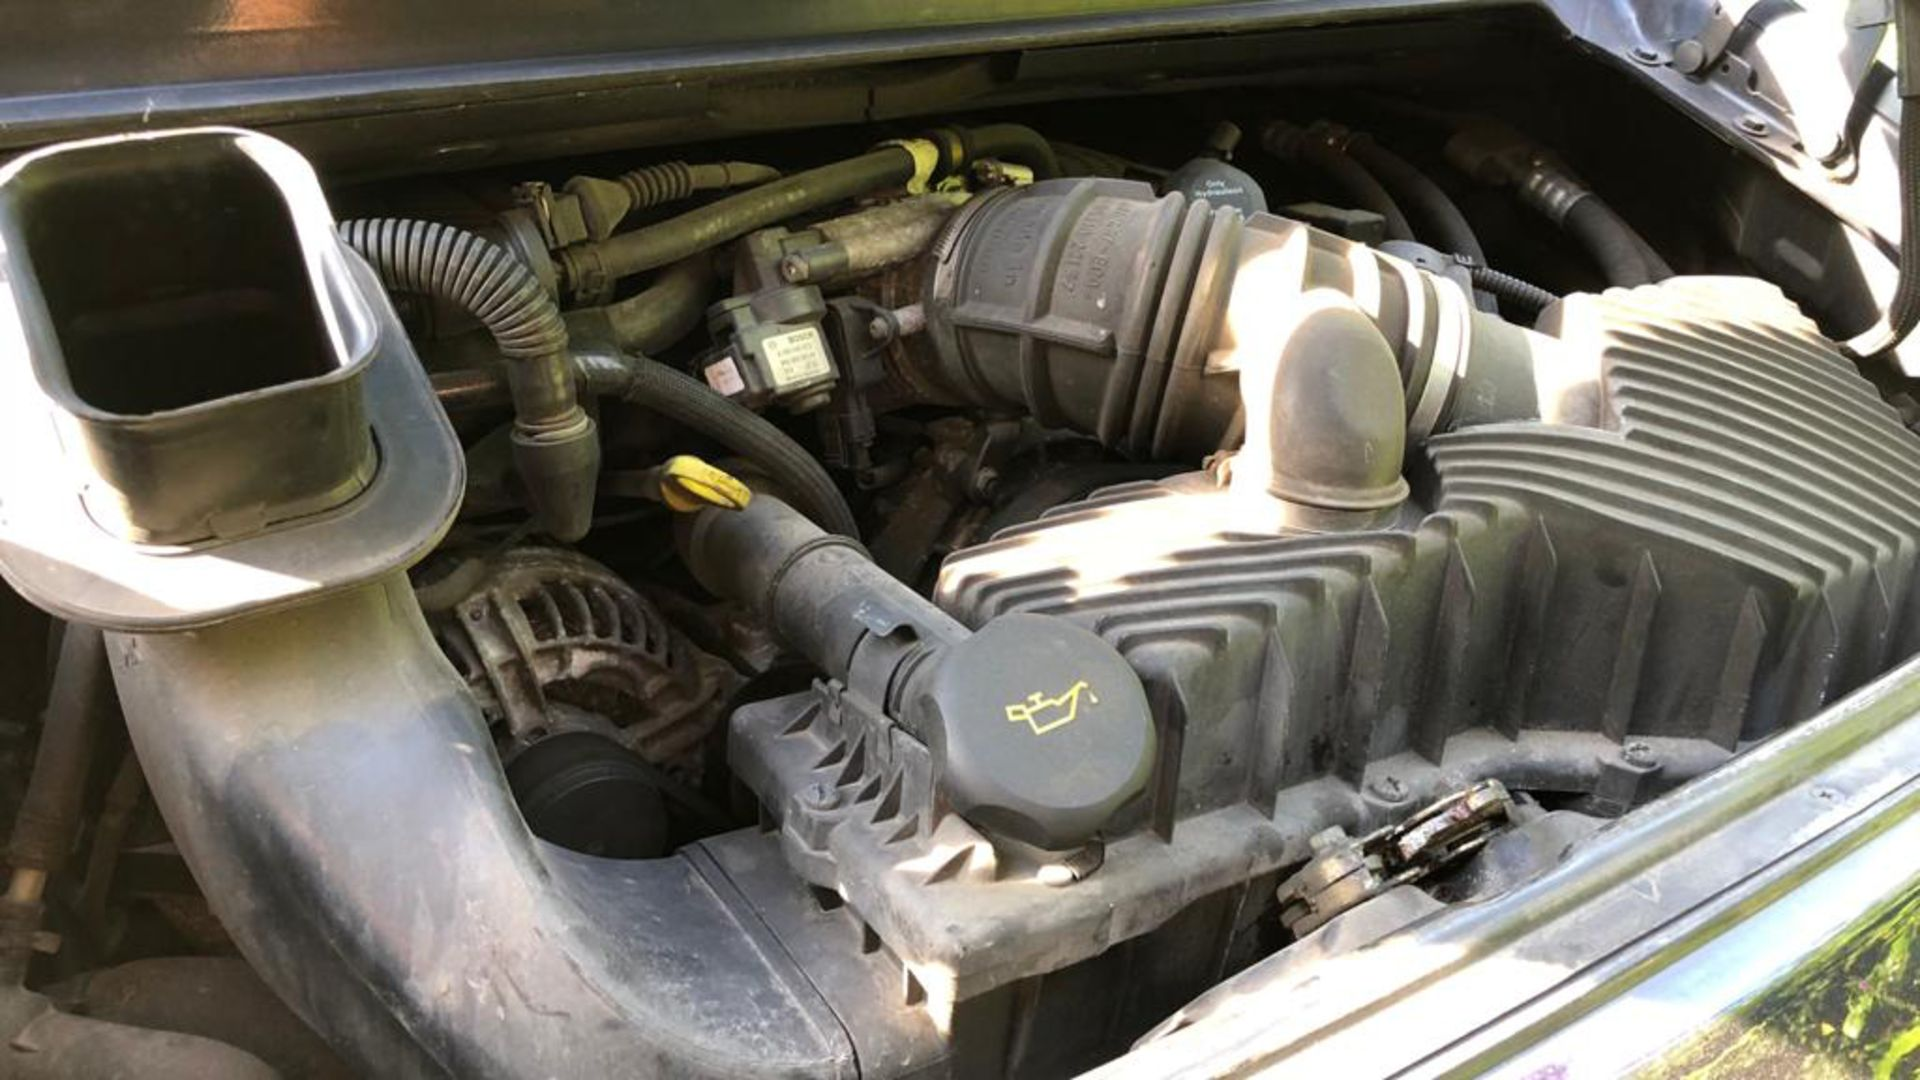 How to clean your car's engine – tip 2